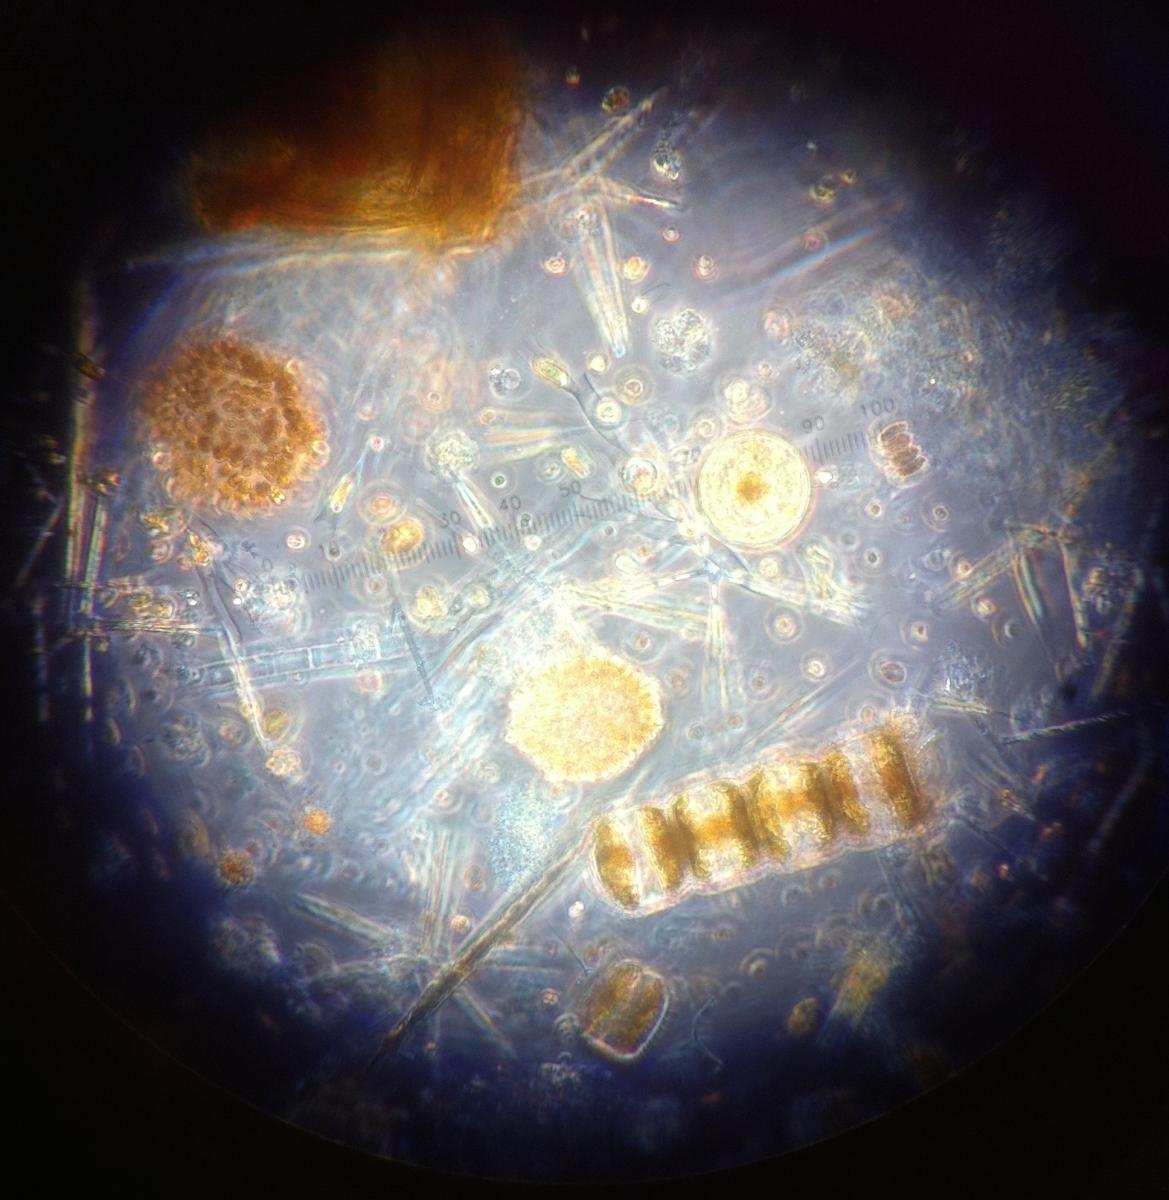 Pond Water Microorganisms Images